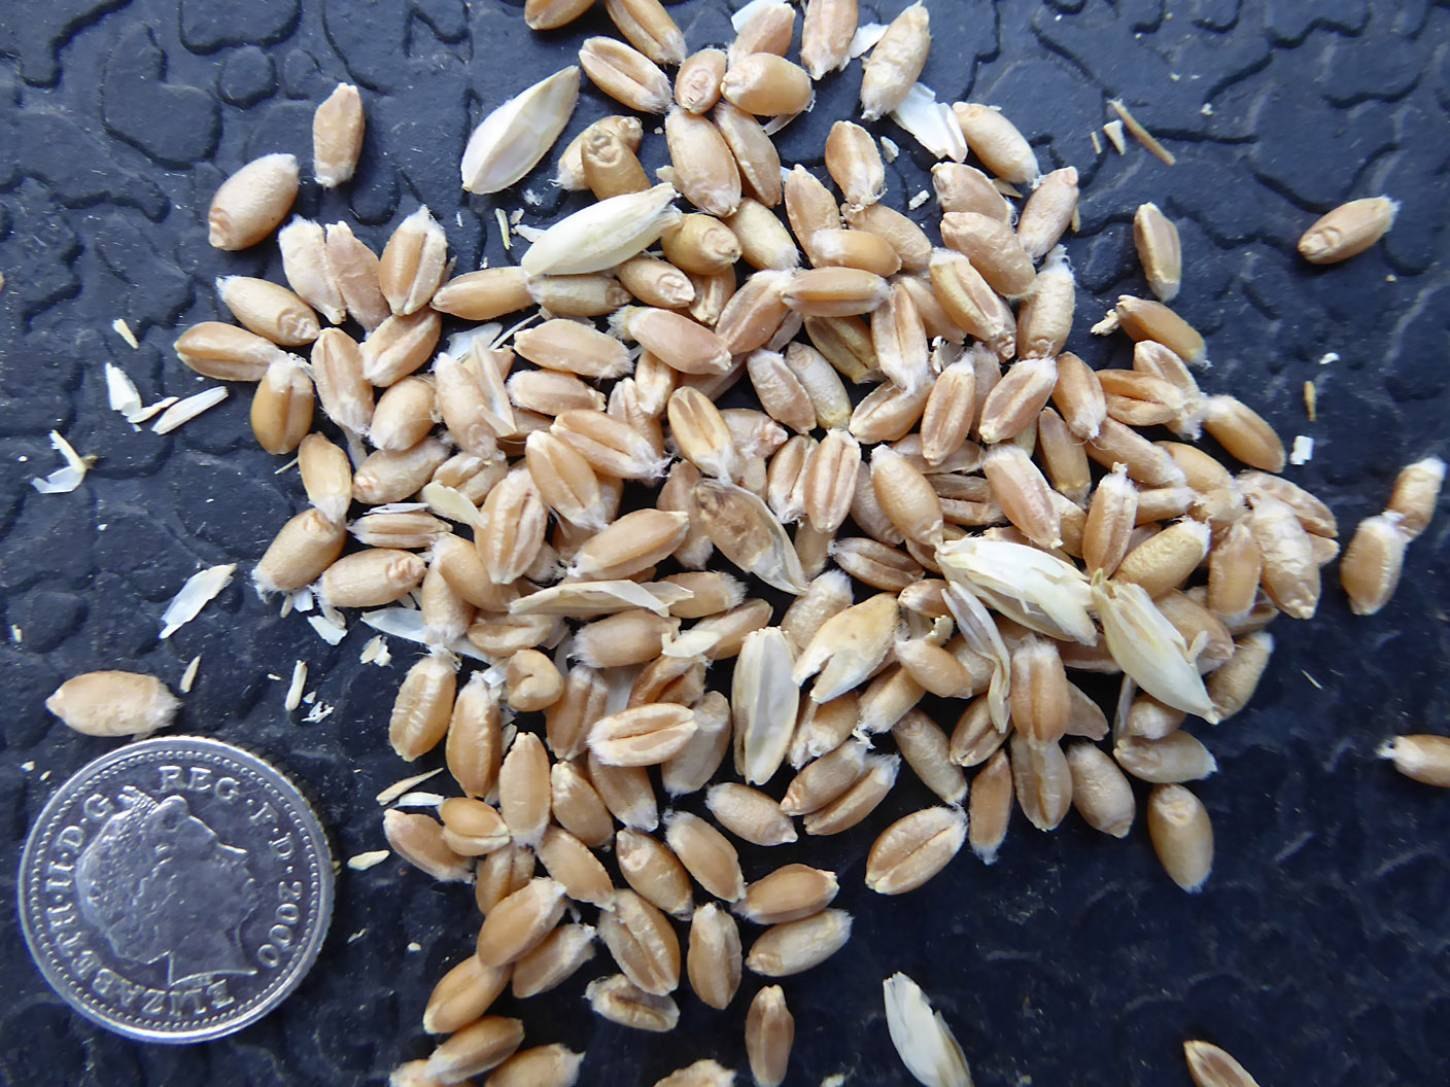 wheat identification images for <a href='http://brockwell-bake.org.uk/wheat/search.php?send=1&ID=109346&genes=1&bunt_a=1' target='_blank'>Red Stettin B</a> and more <a href='http://www.wheat-gateway.org.uk/hub.php?ID=57' target='_blank'>info</a> - 7:00pm&nbsp;3<sup>rd</sup>&nbsp;Aug.&nbsp;'17